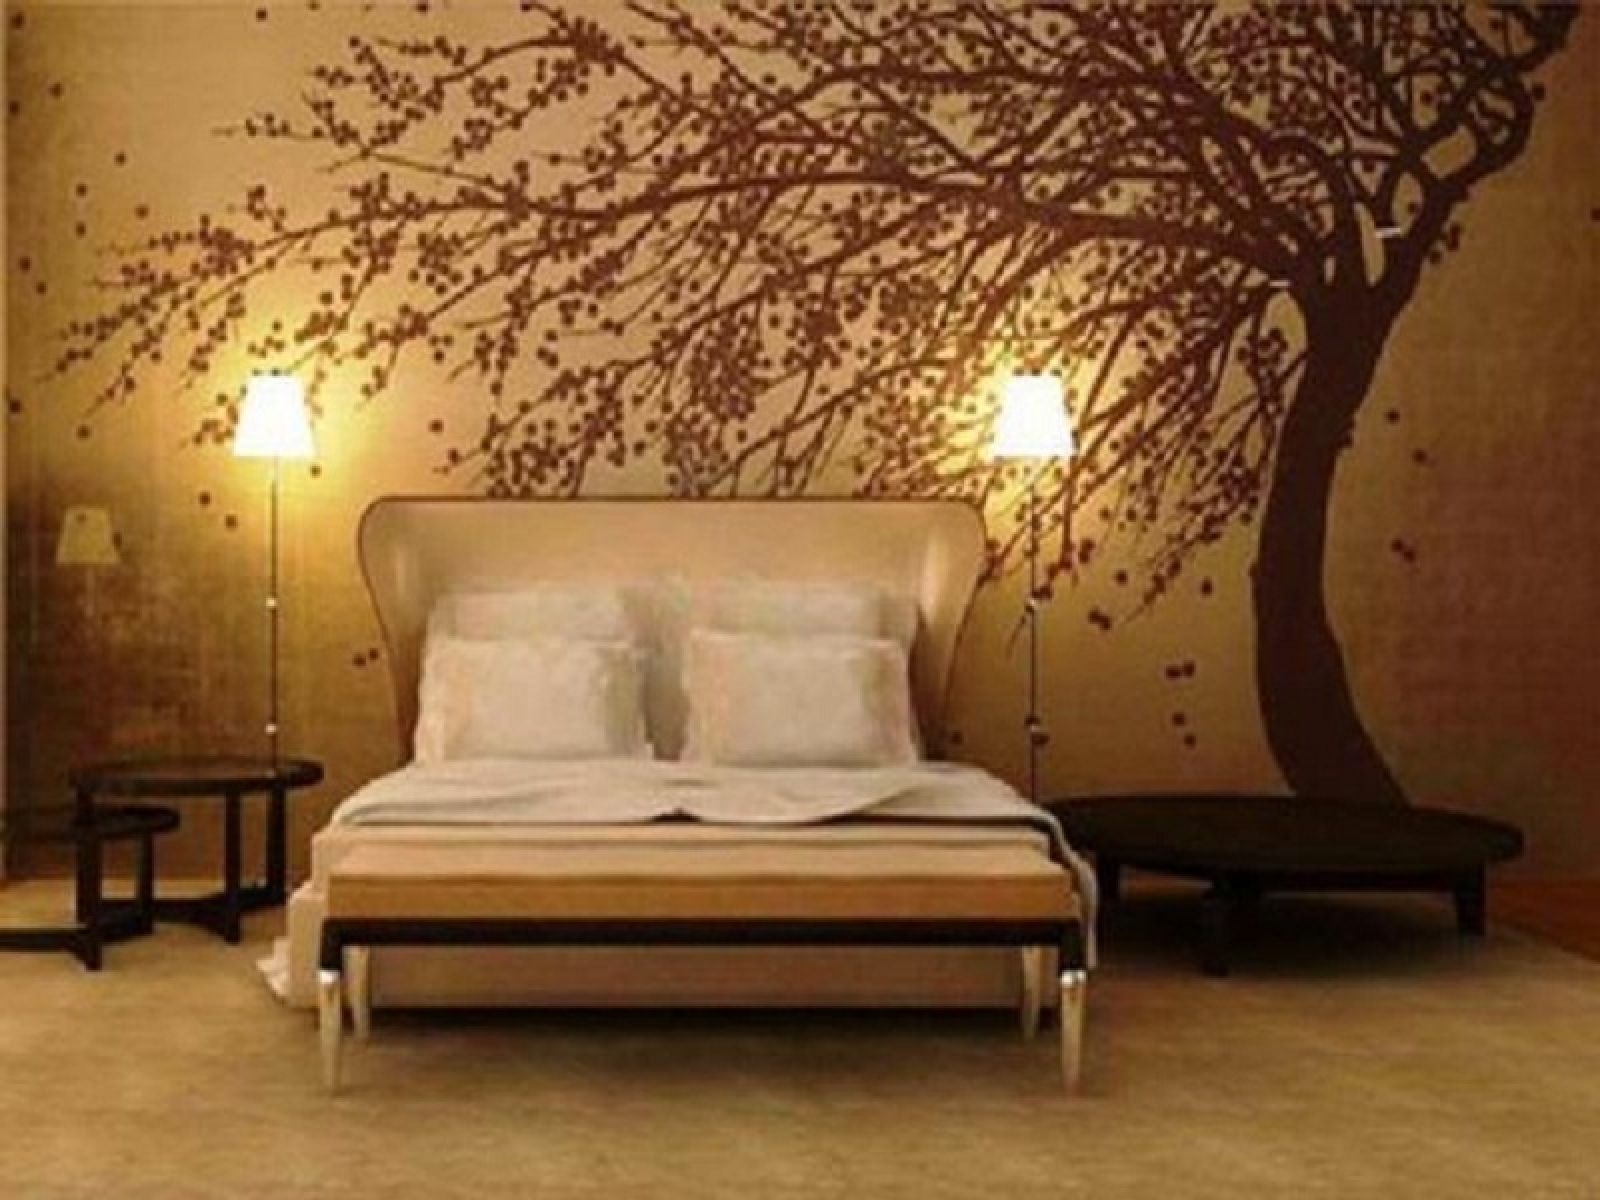 Best Diy Wallpaper Designs For Bedrooms Bedroom Ideas Like The - Bedroom wallpaper